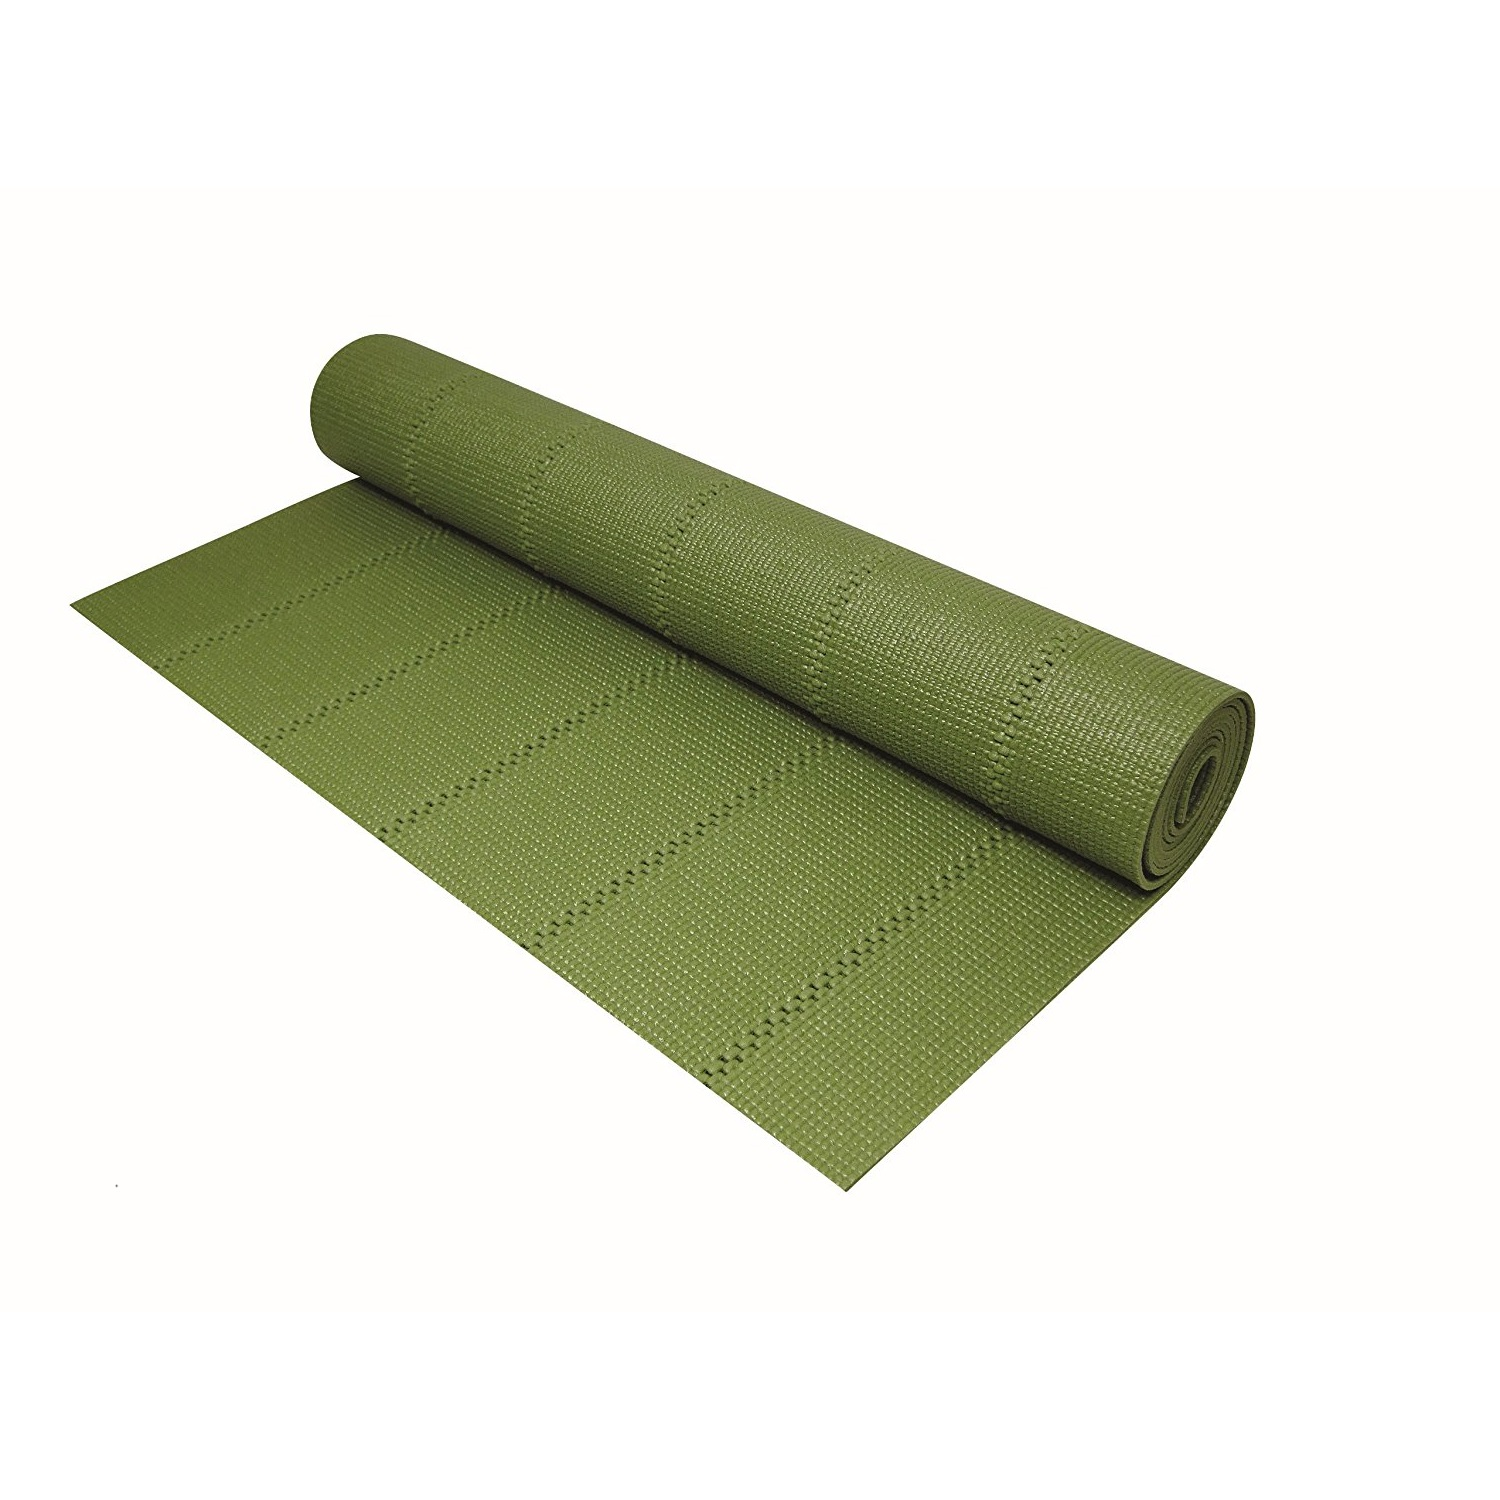 Gaiam Solid Non Slip Yoga Mat